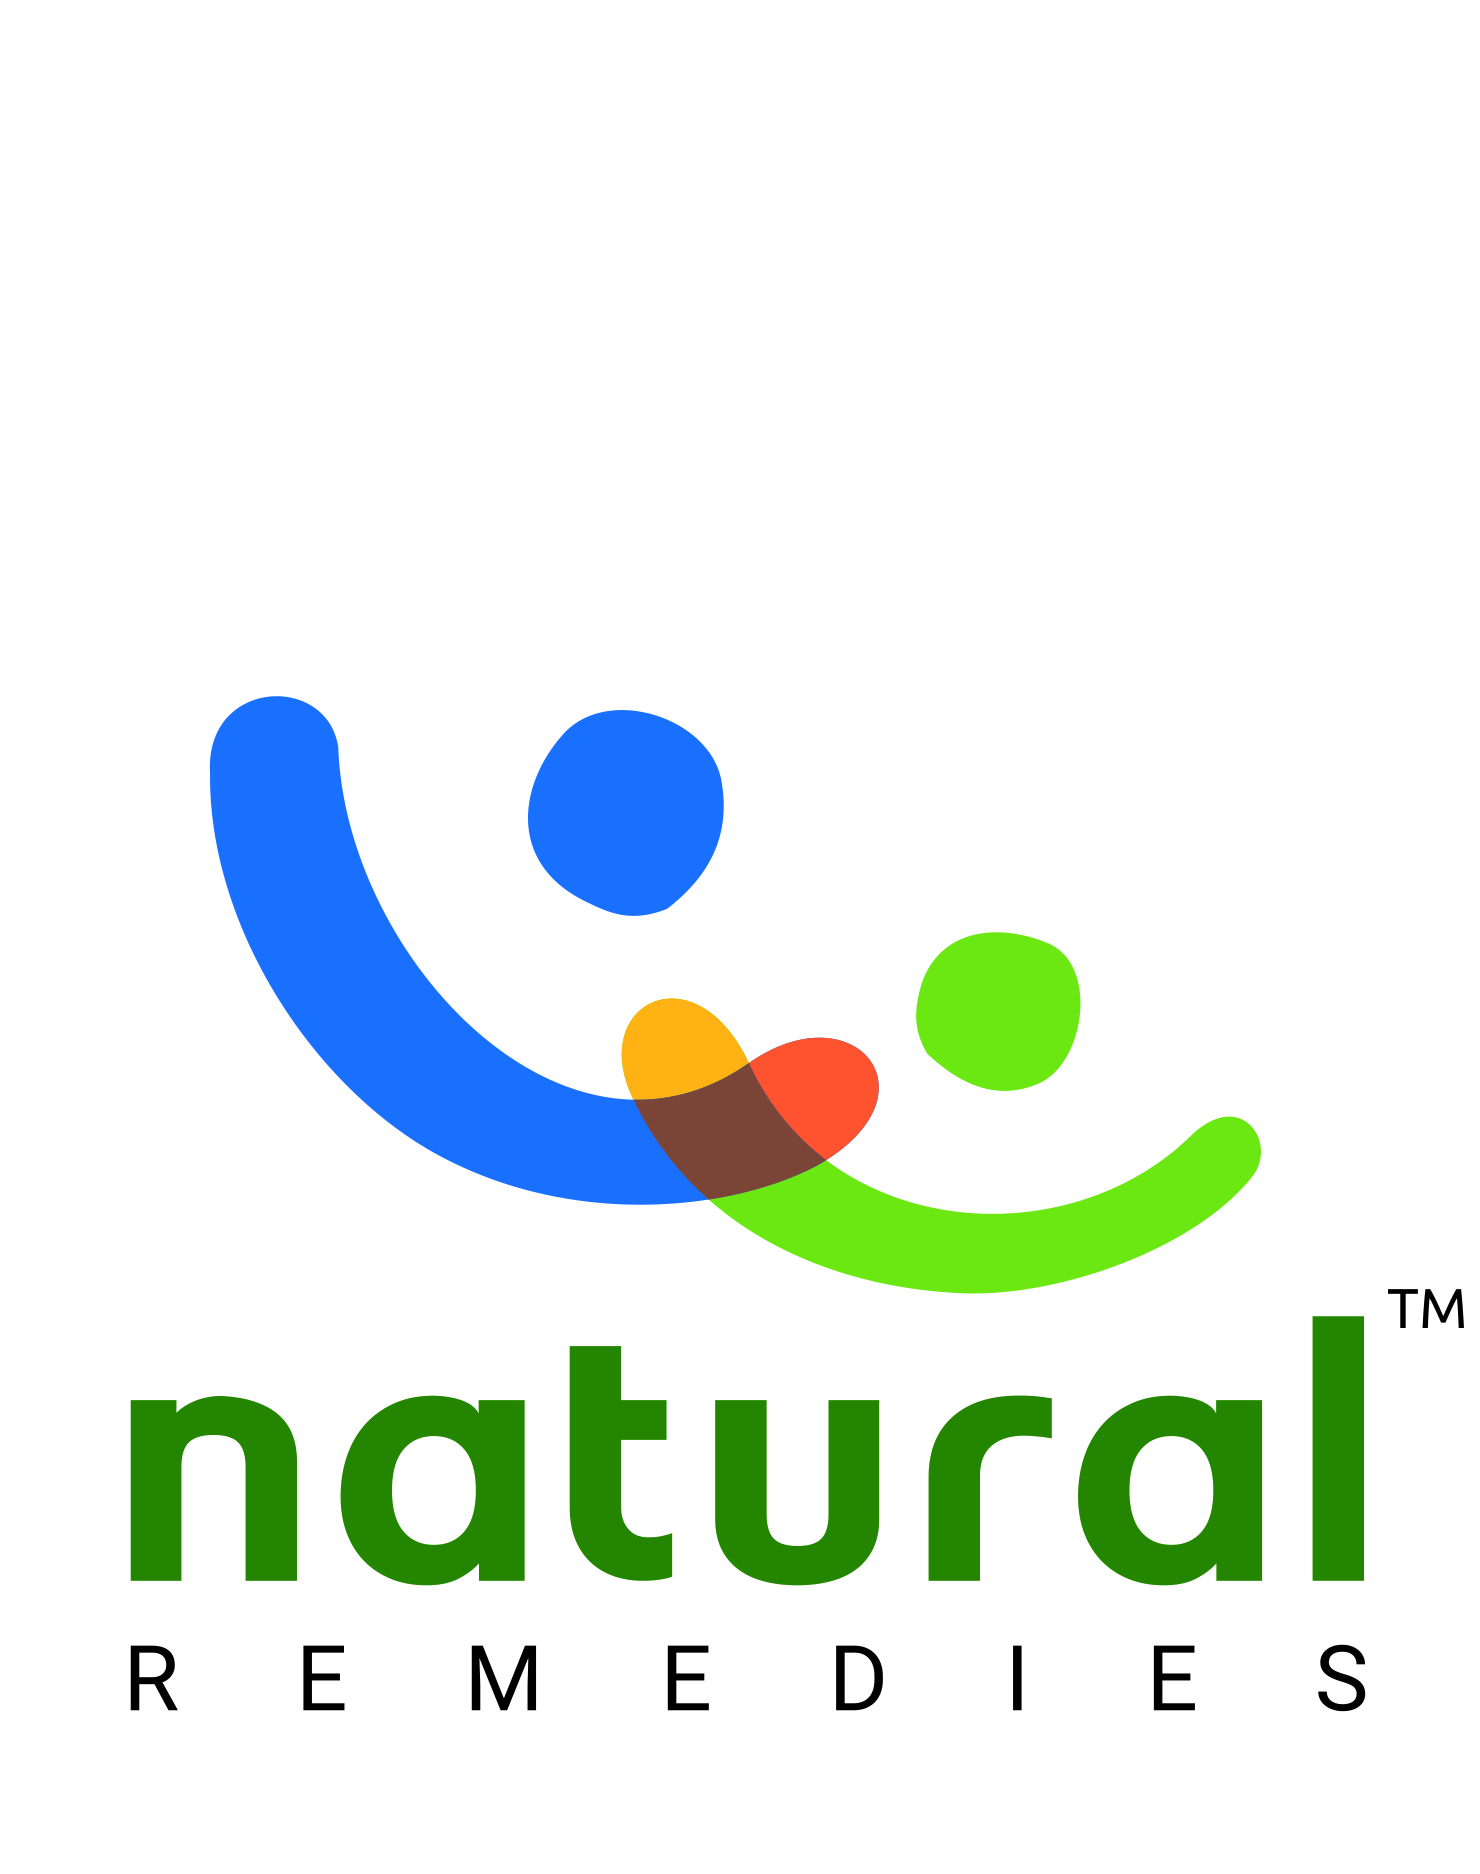 Natural Remedies logo.jpg